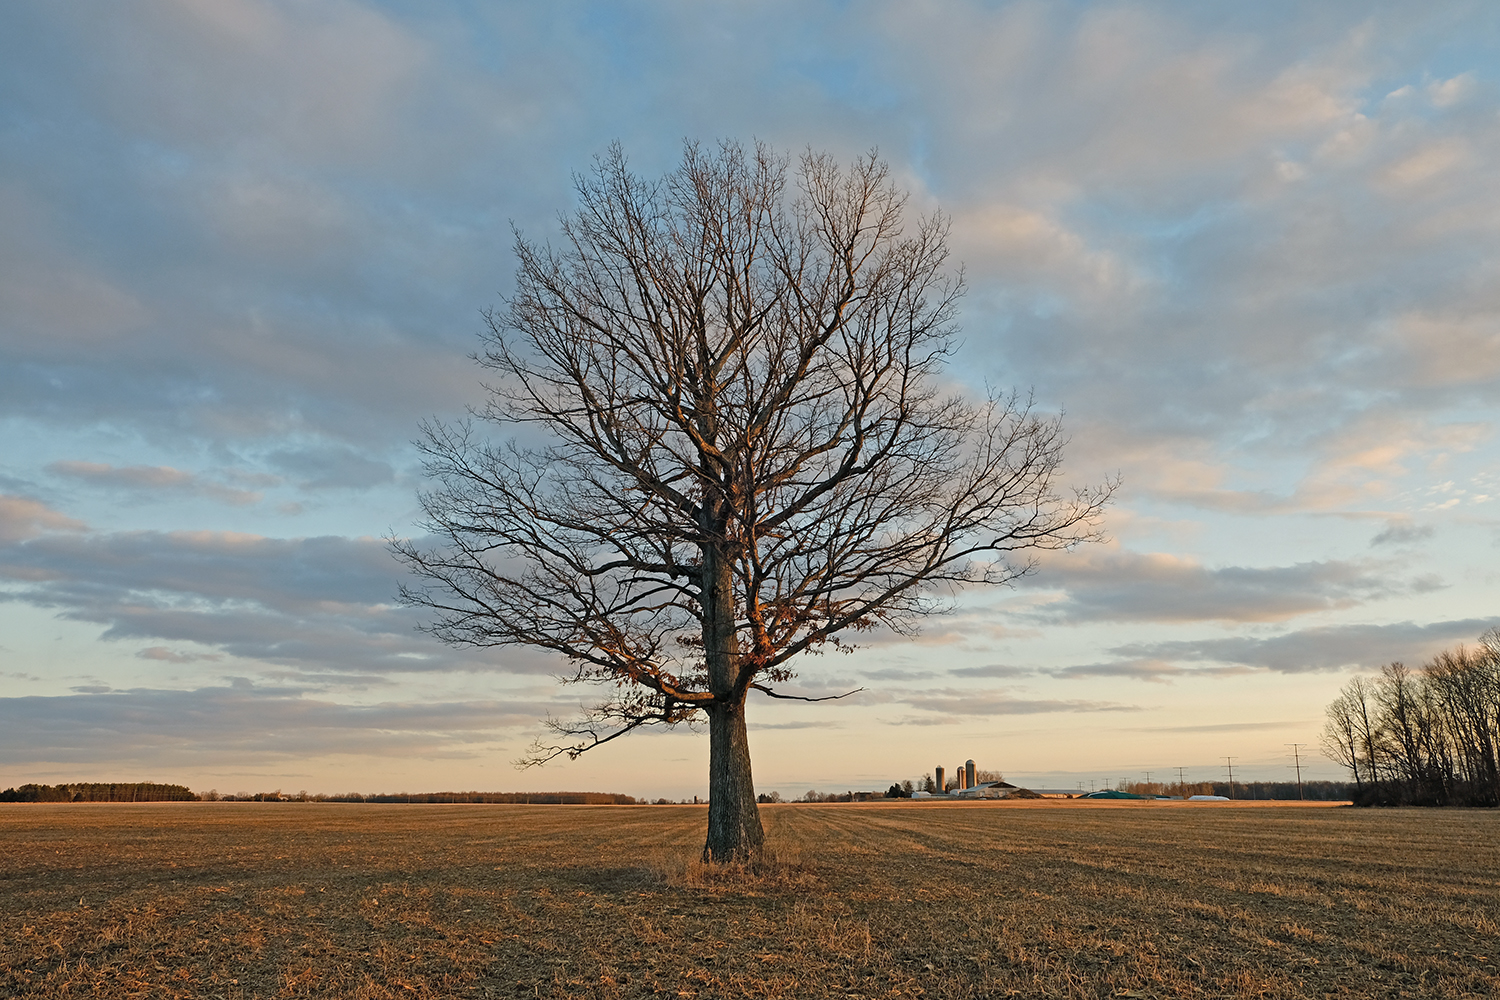 Recent photograph of The Lunch Tree near sunset, March 2019.